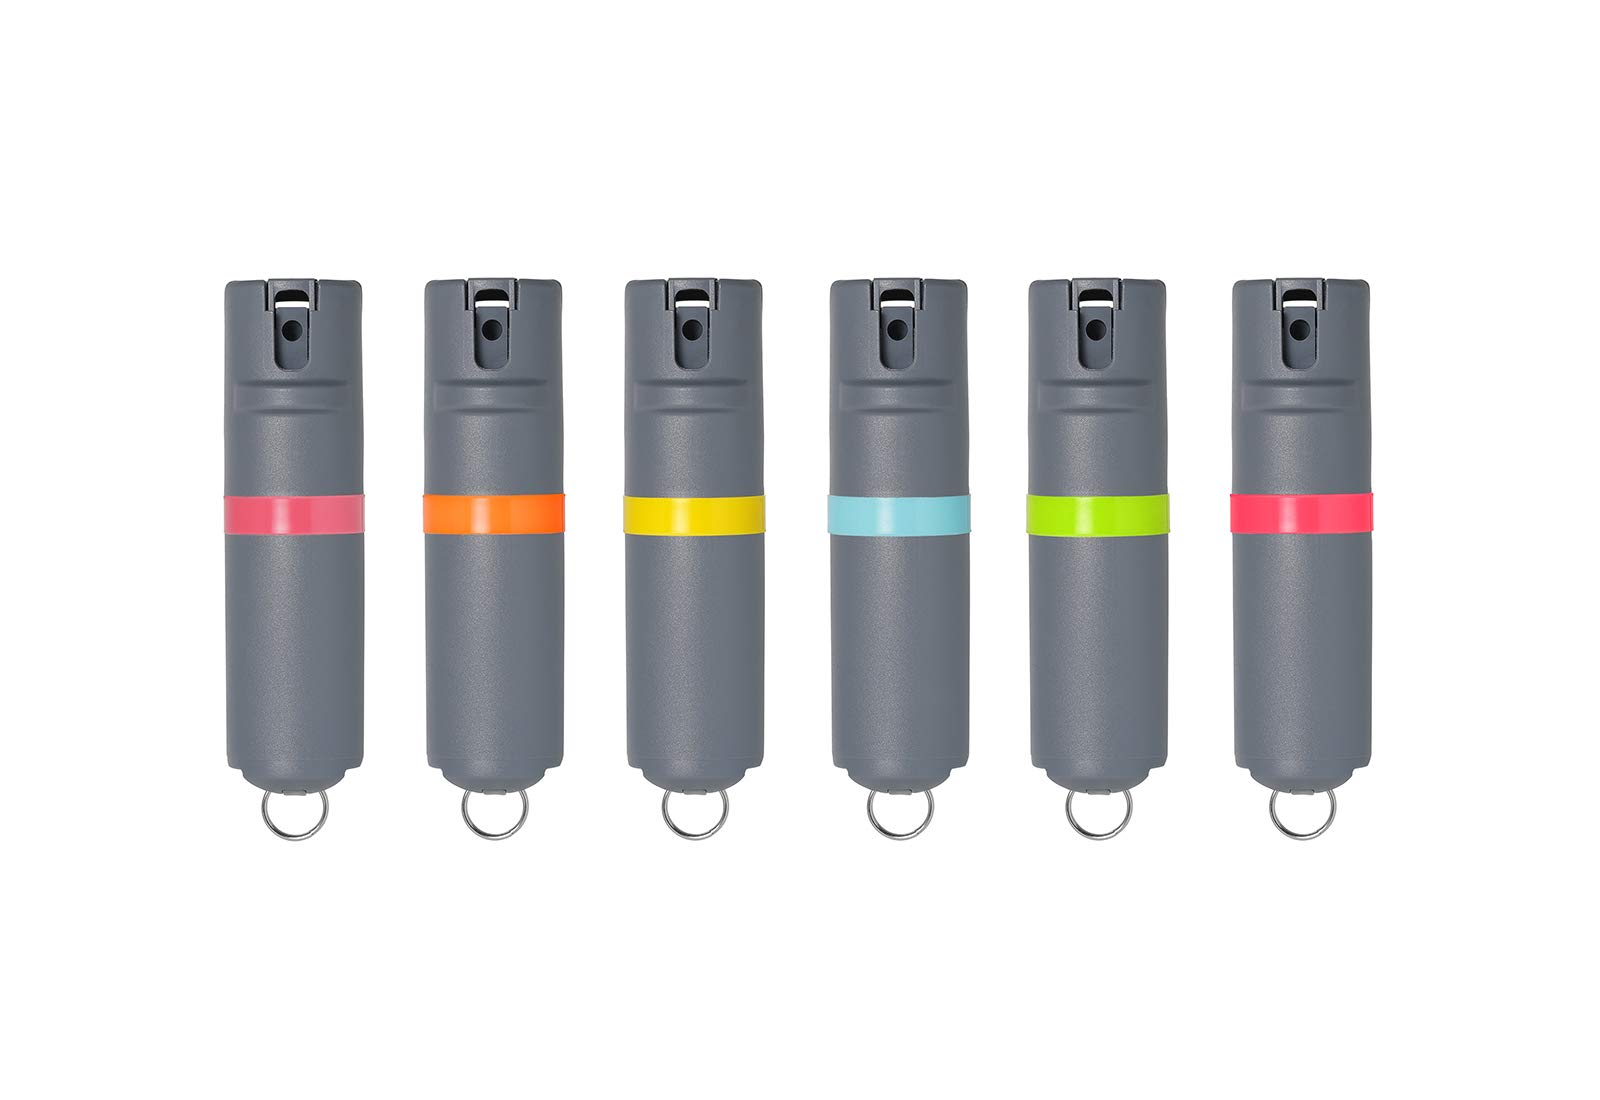 POM 6-Pack Grey Pepper Spray Keychain Model - Maximum Strength Self Defense OC Spray Safety Flip Top 10ft Range Compact Discreet for Keys Backpack Quick Key Release by POM